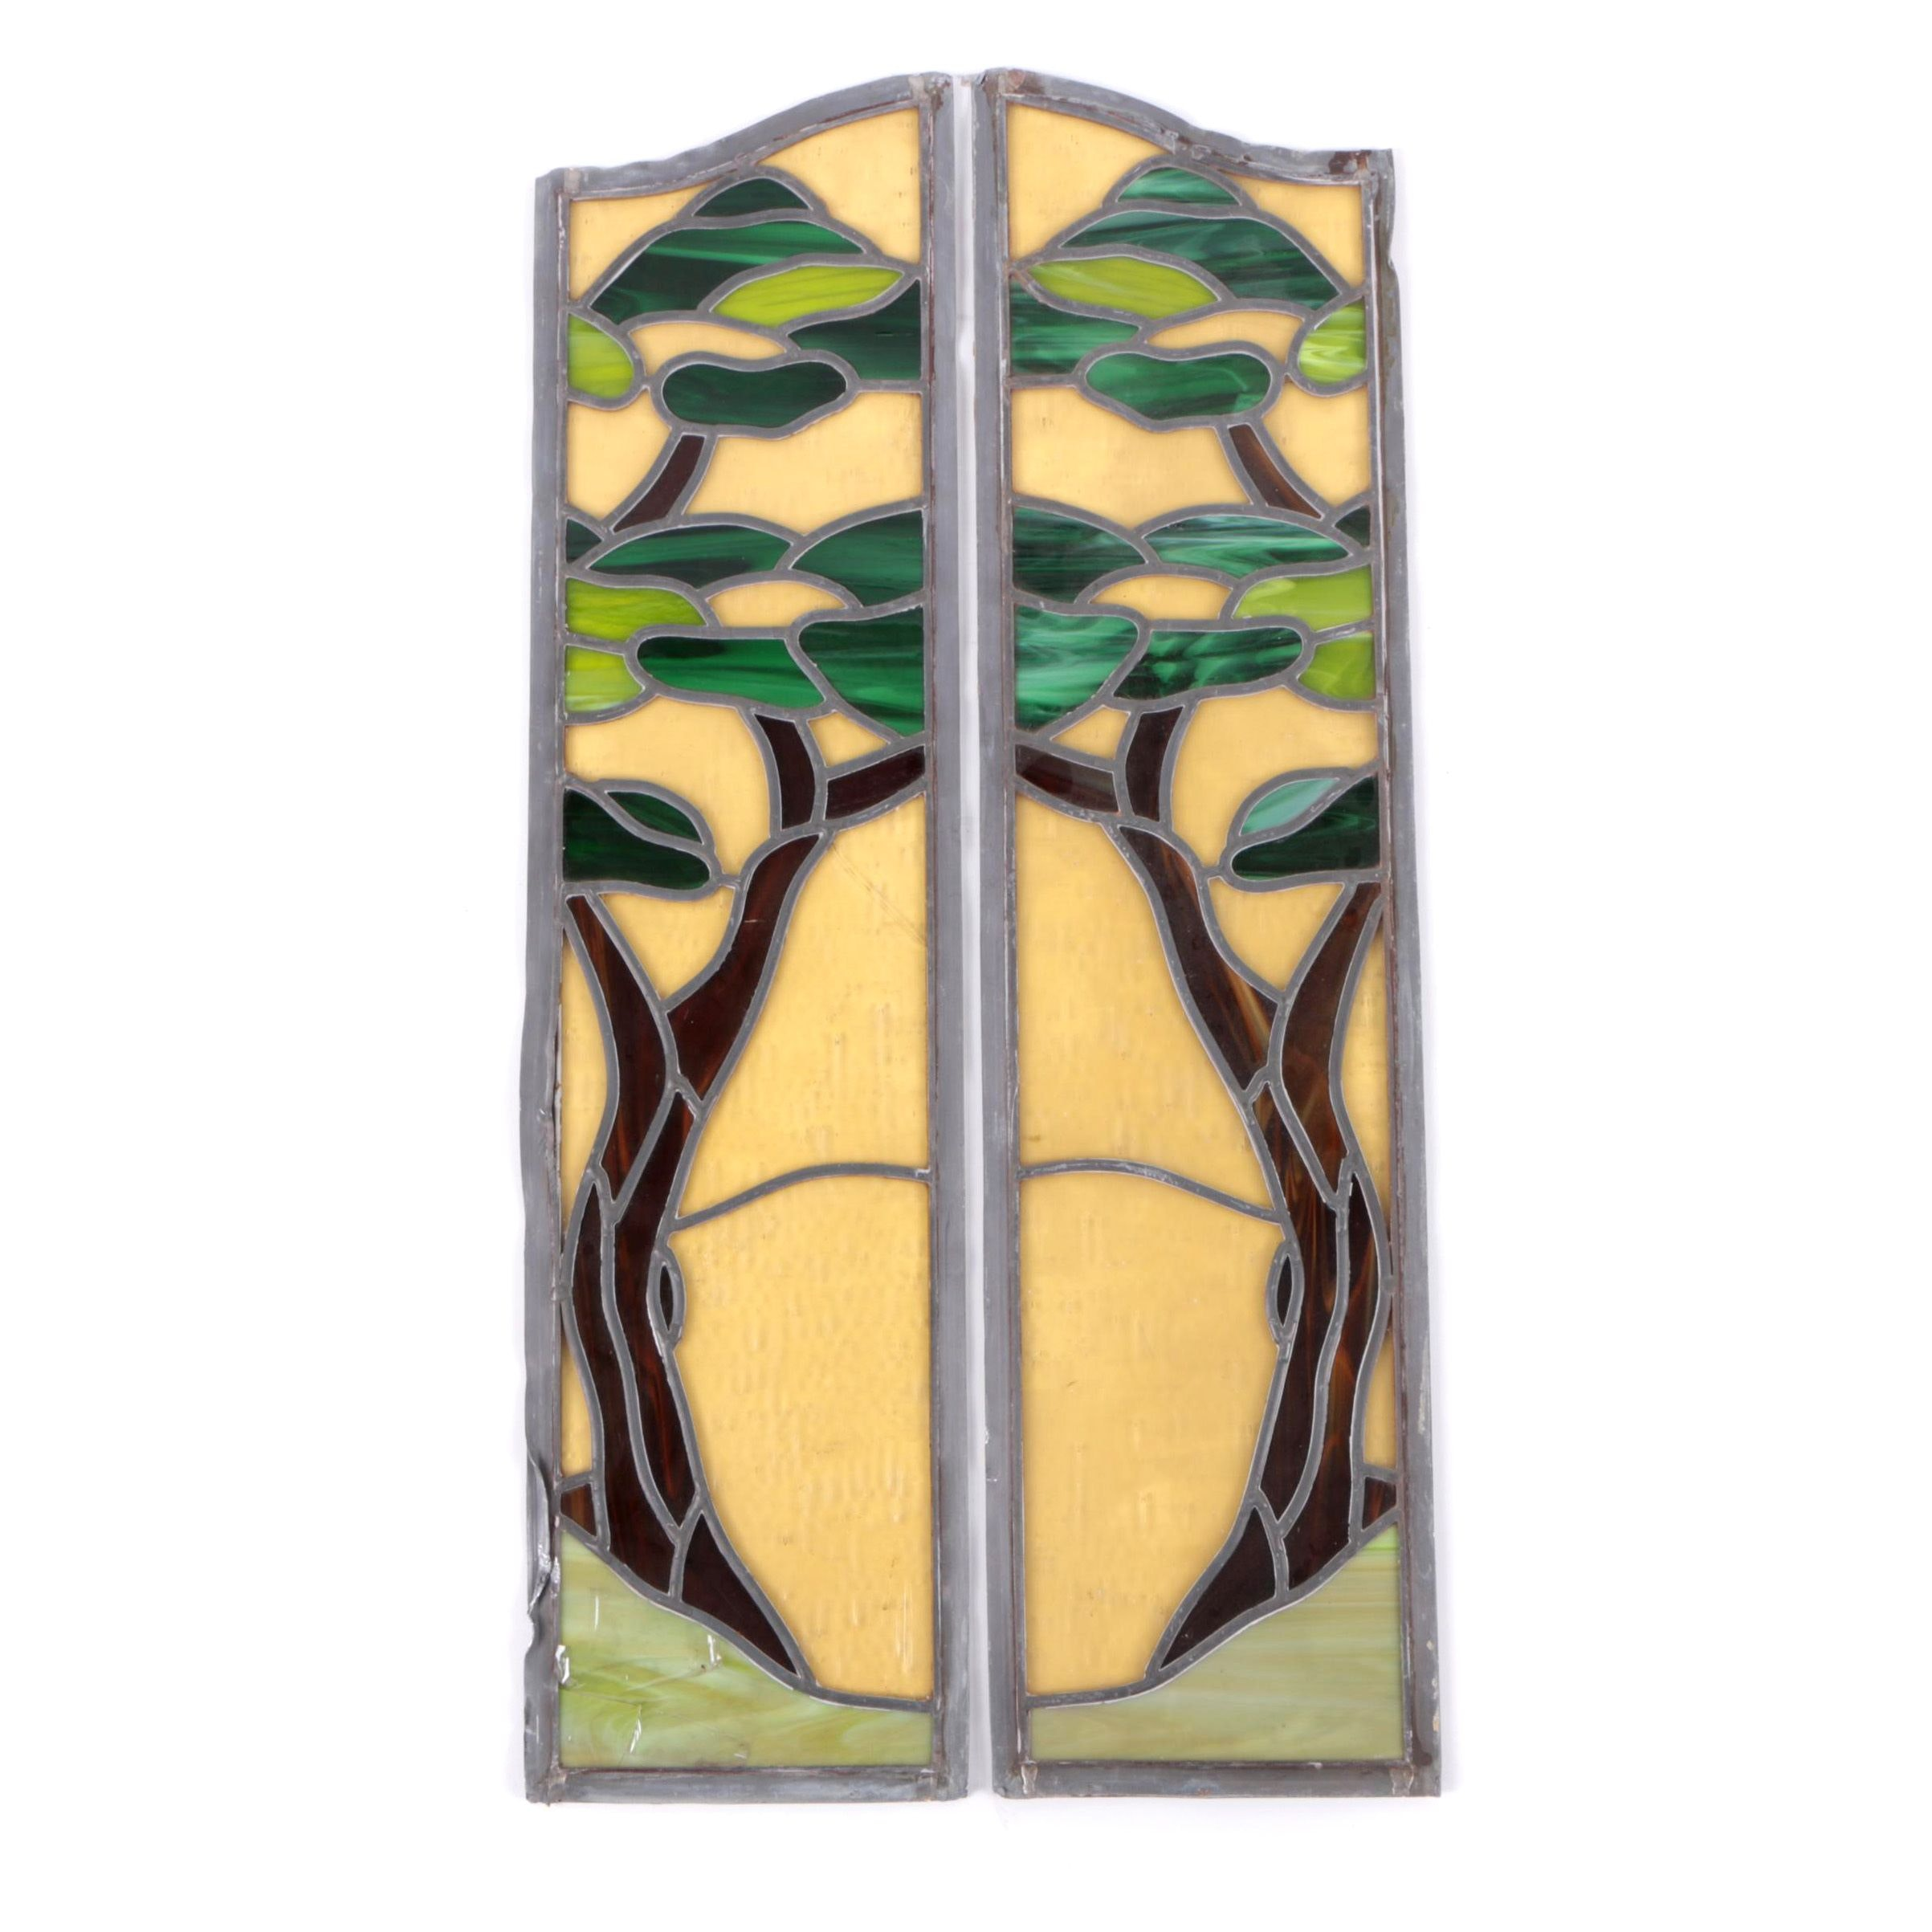 Stained Glass Panels of Trees